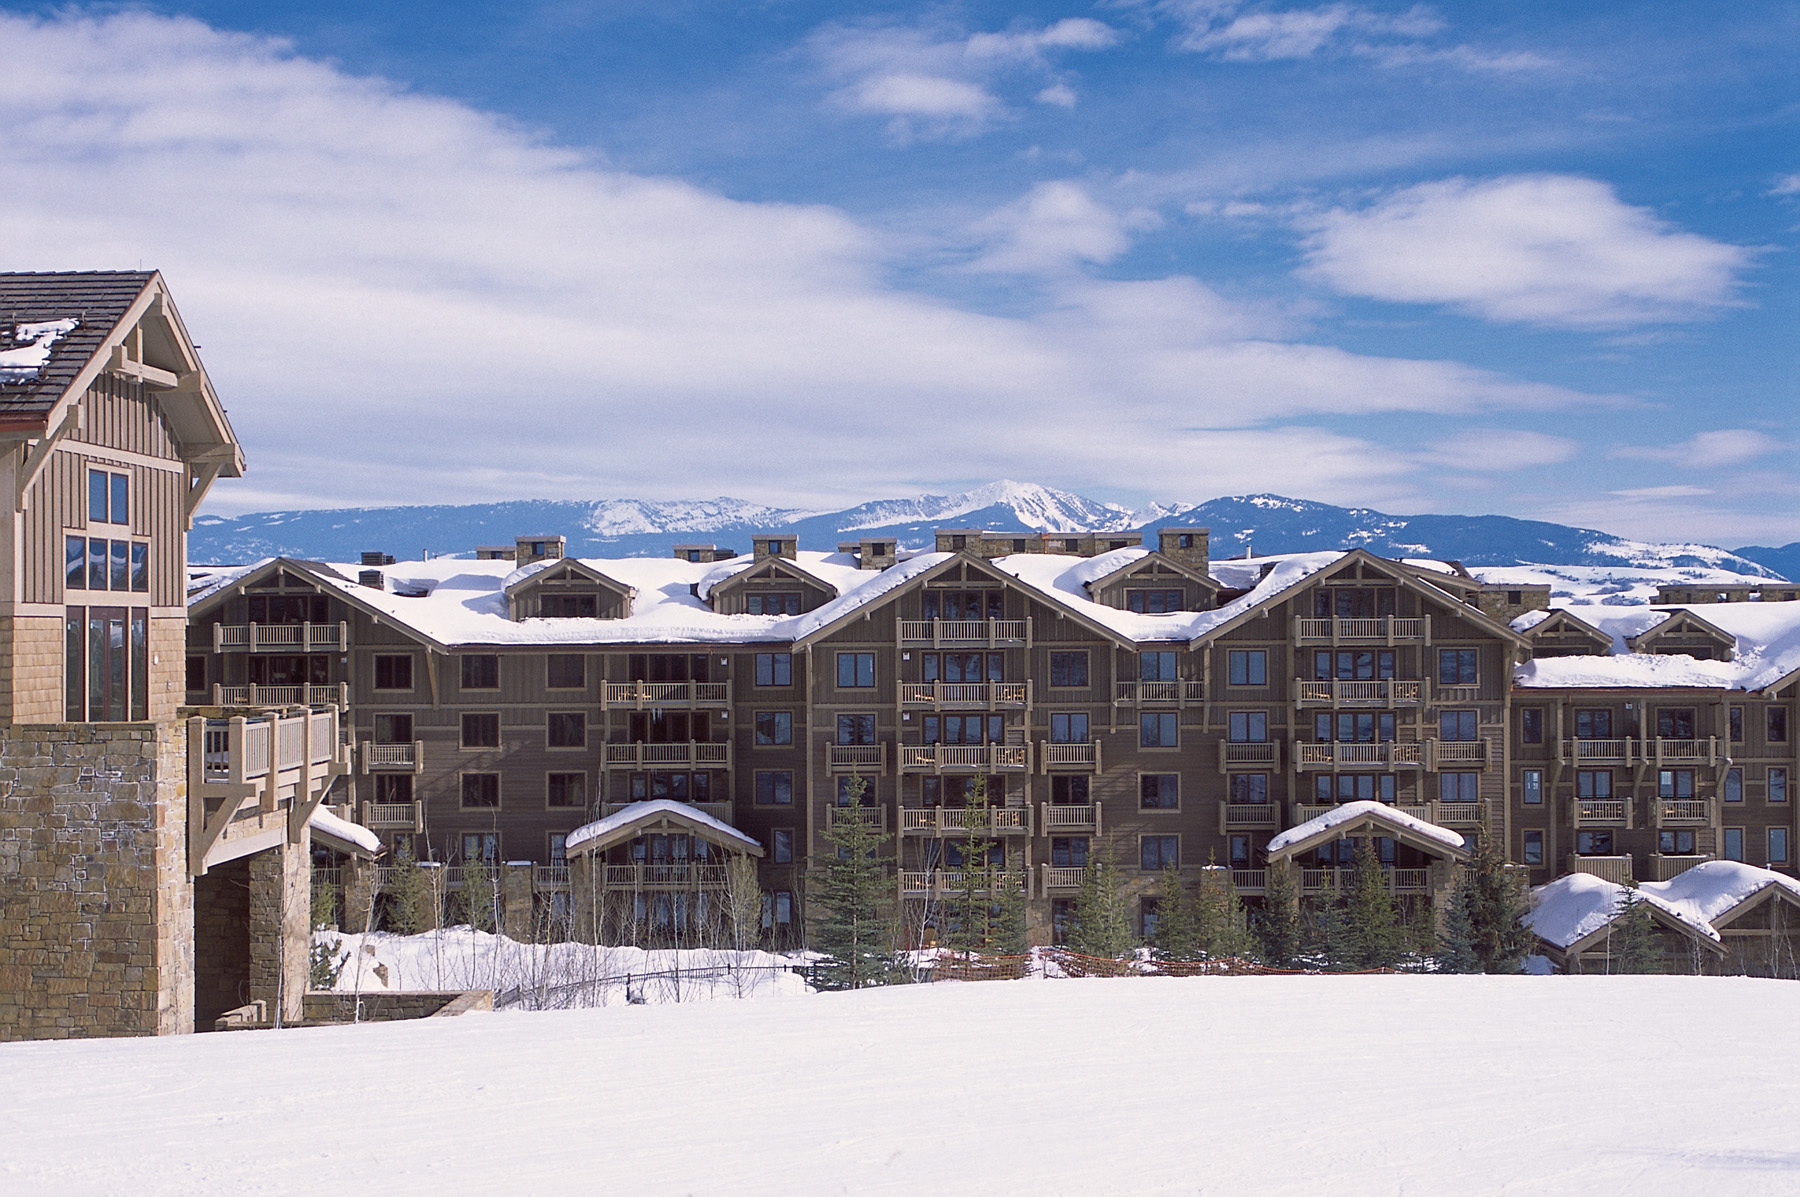 Single Family Home for Sale at Four Seasons Residence Club 7680 Granite Loop Road #550 Teton Village, Wyoming, 83025 Jackson Hole, United States